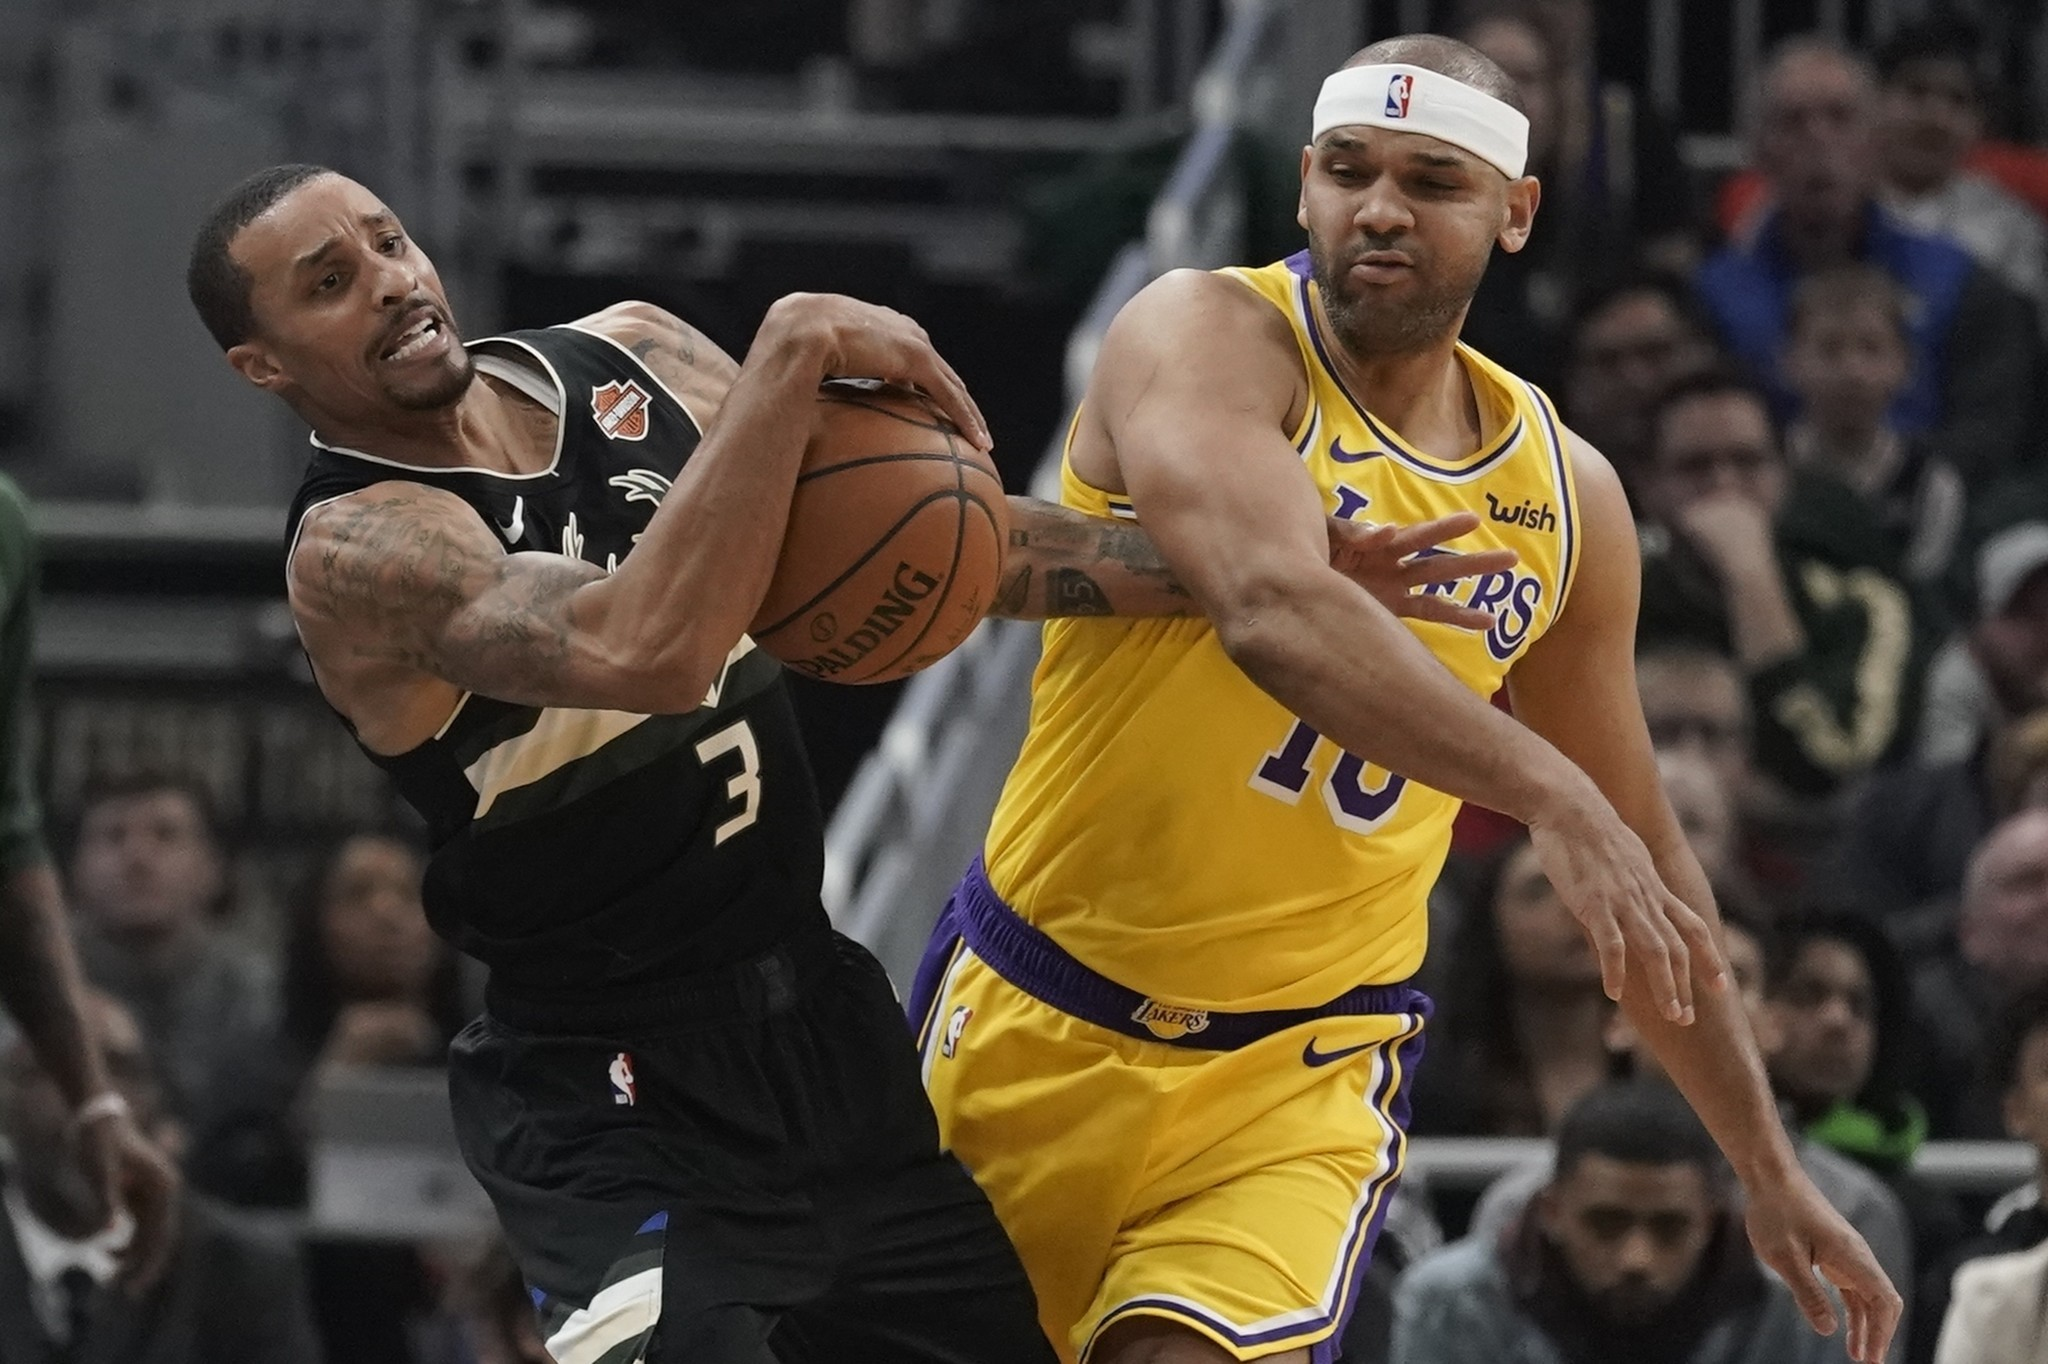 Jared Dudley knows the Nets' culture has to change with superstars in the fold